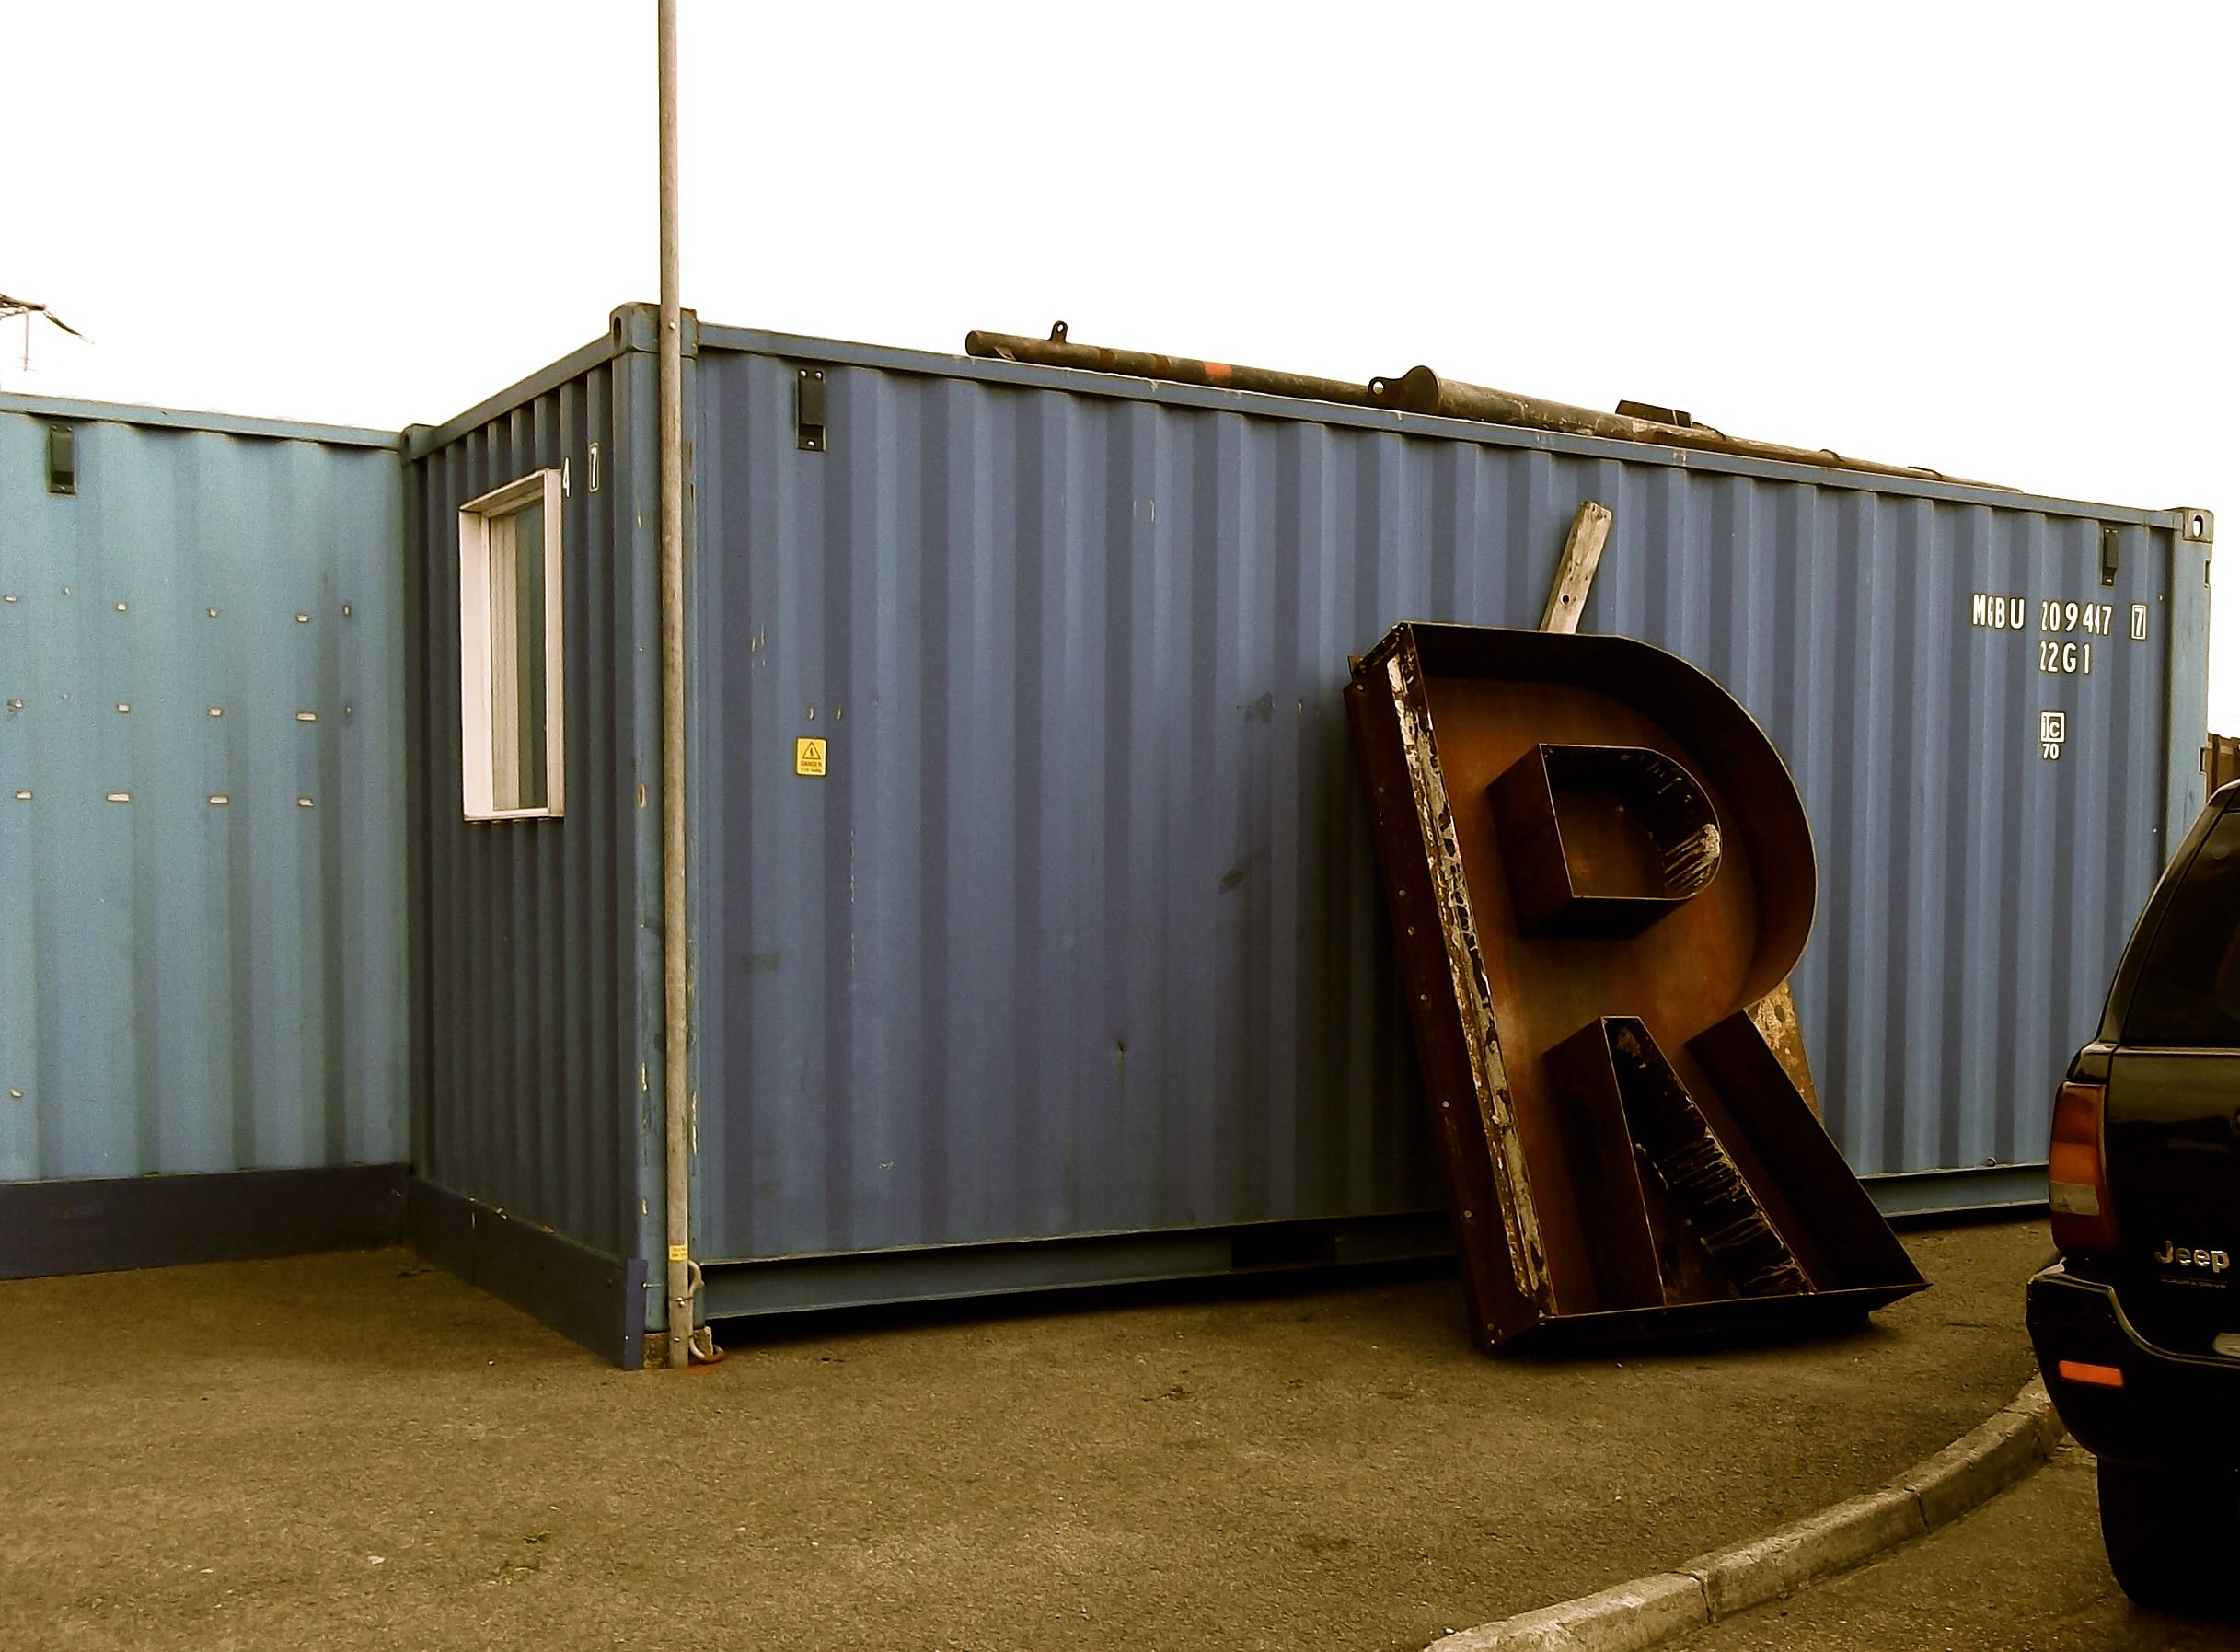 'R' - THIS, SADLY WOULDN'T FIT ON THE BACK OF MY BIKE